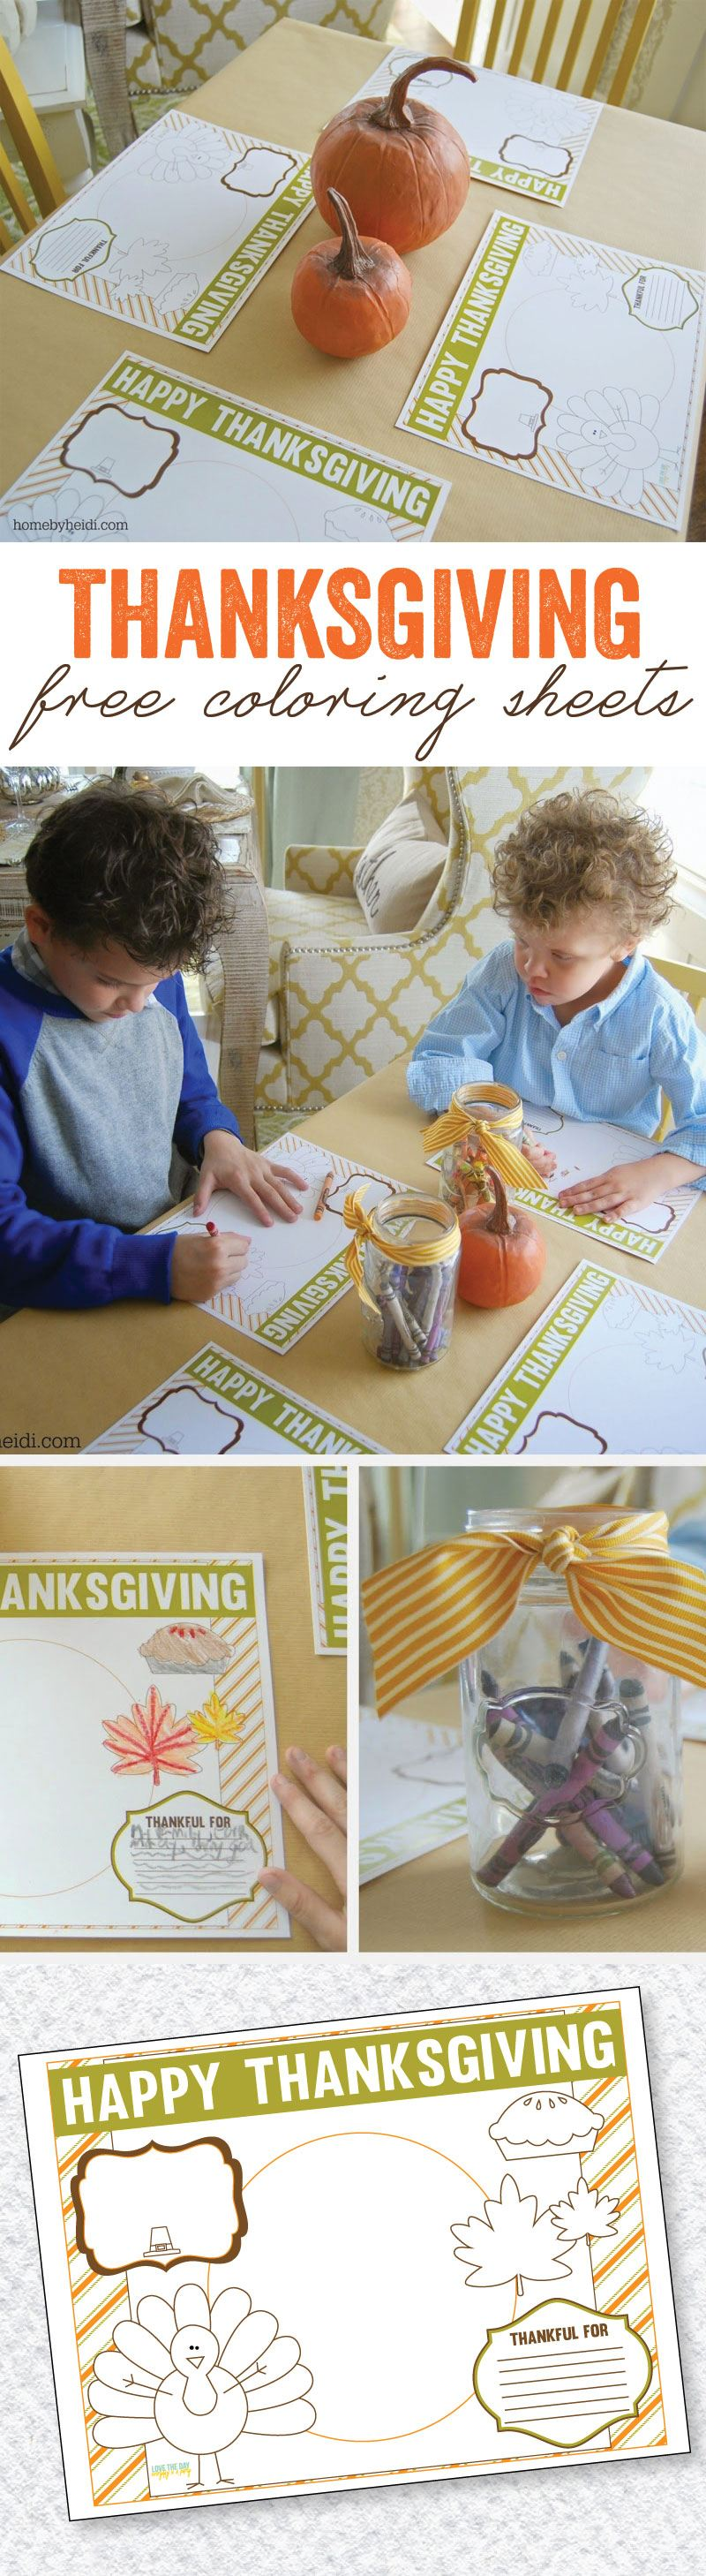 Thanksgiving Coloring Sheets by Lindi Haws of Love The Day